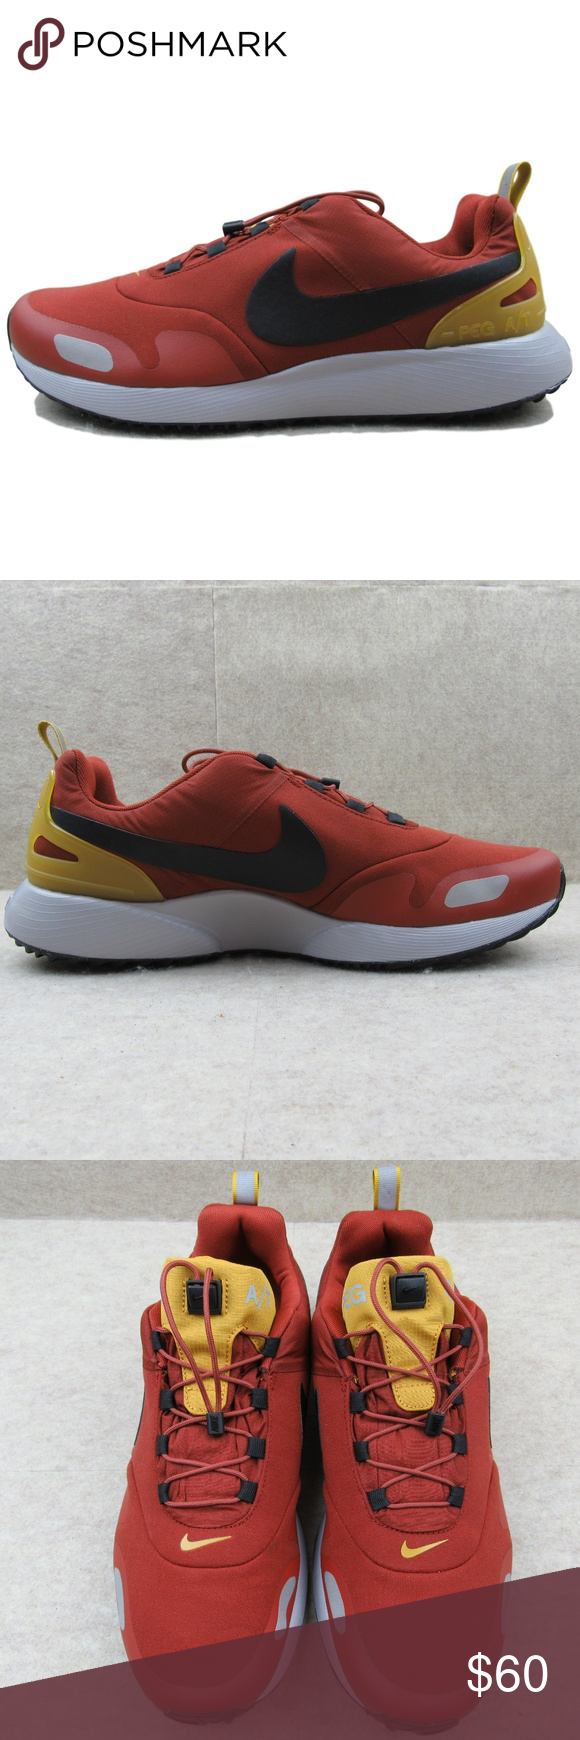 63d314cde048 Nike Air Pegasus A T Trail Running Shoes Size 12 Nike Air Pegasus A T Trail  Running Shoes Men s Mars Stone   Black Colorway Style - 924469 601 Men s  Size 12 ...